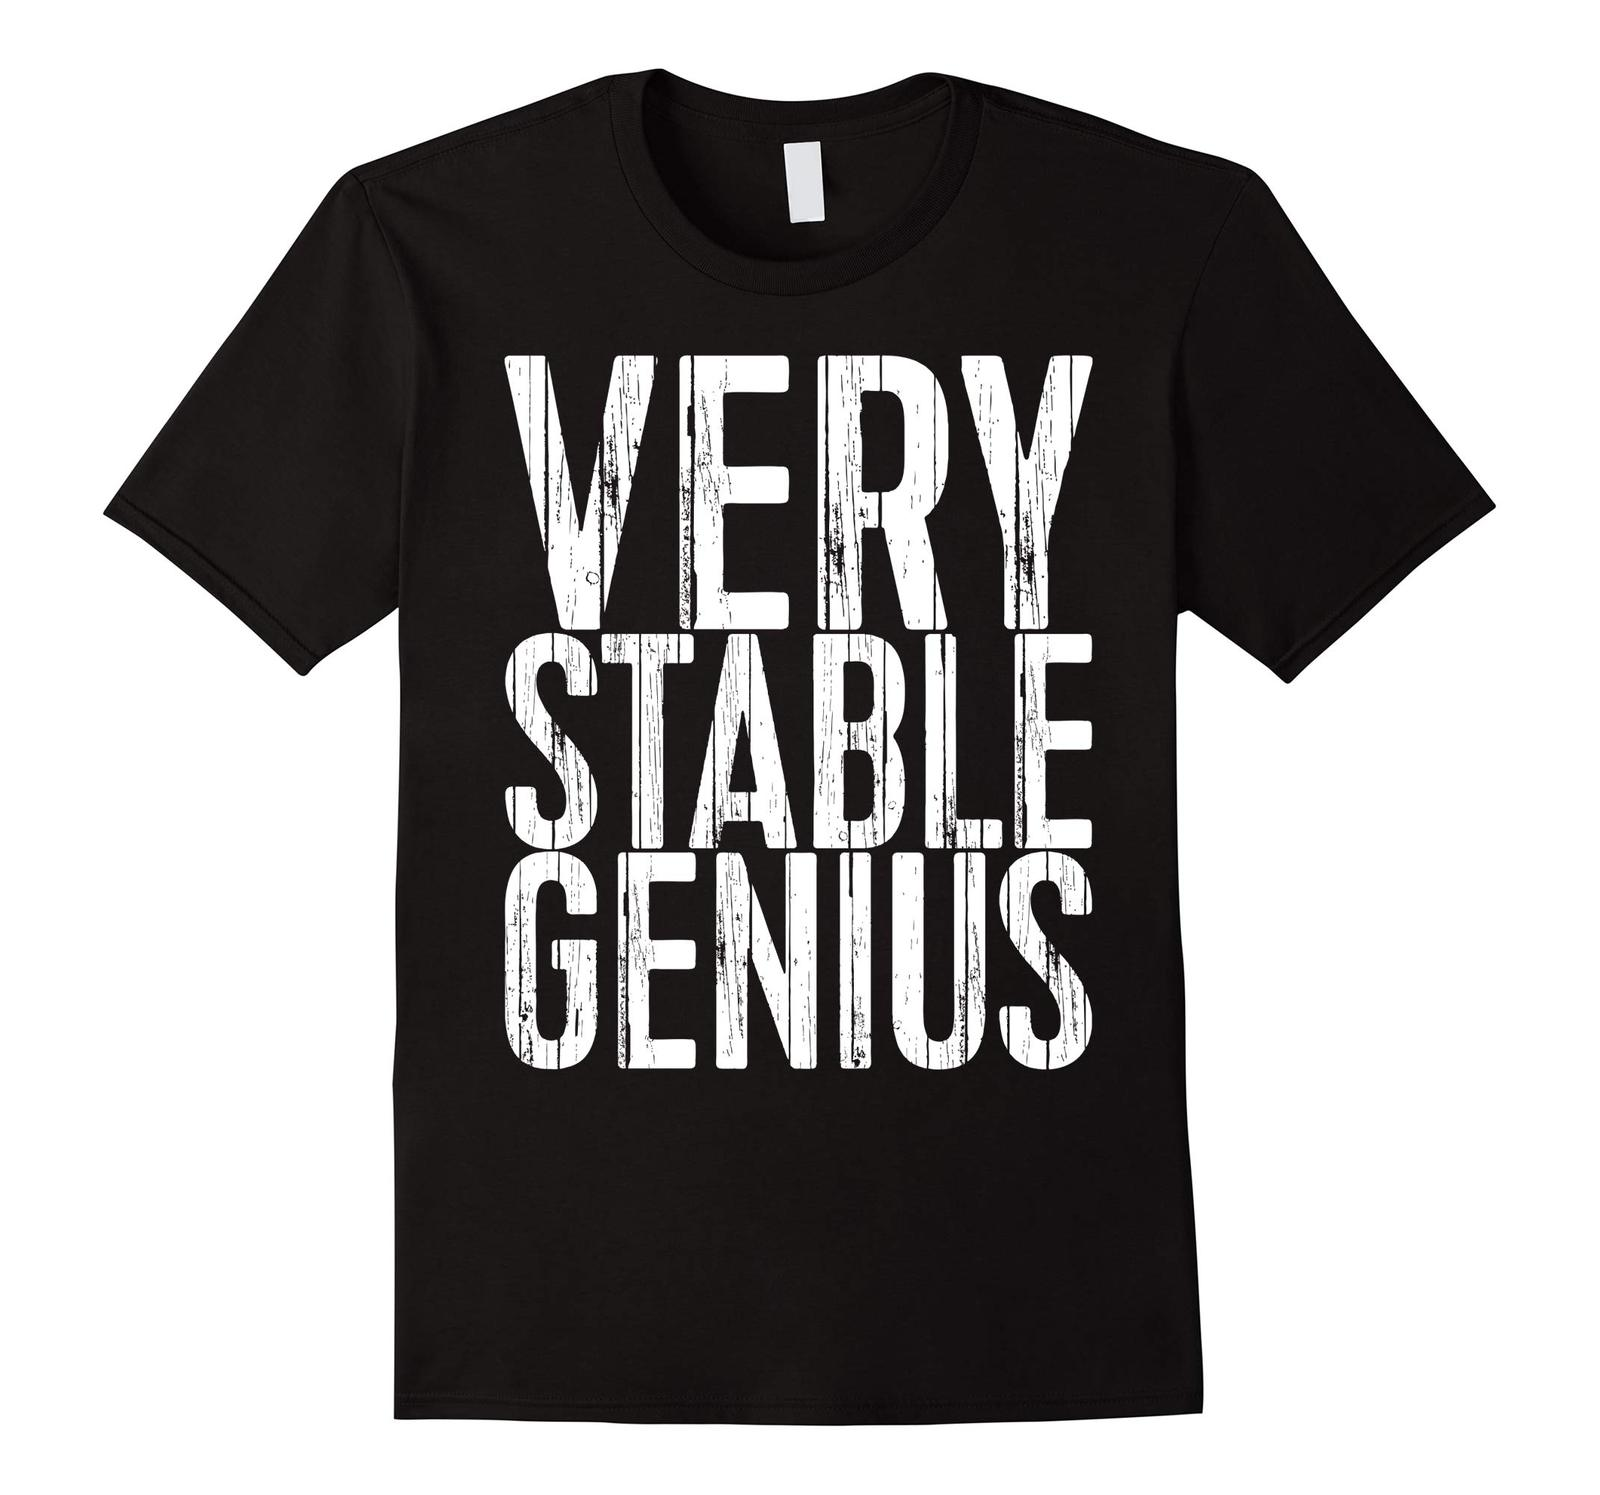 Large size shirts -  Very Stable Genius T-Shirt Political Gift Shirt Men